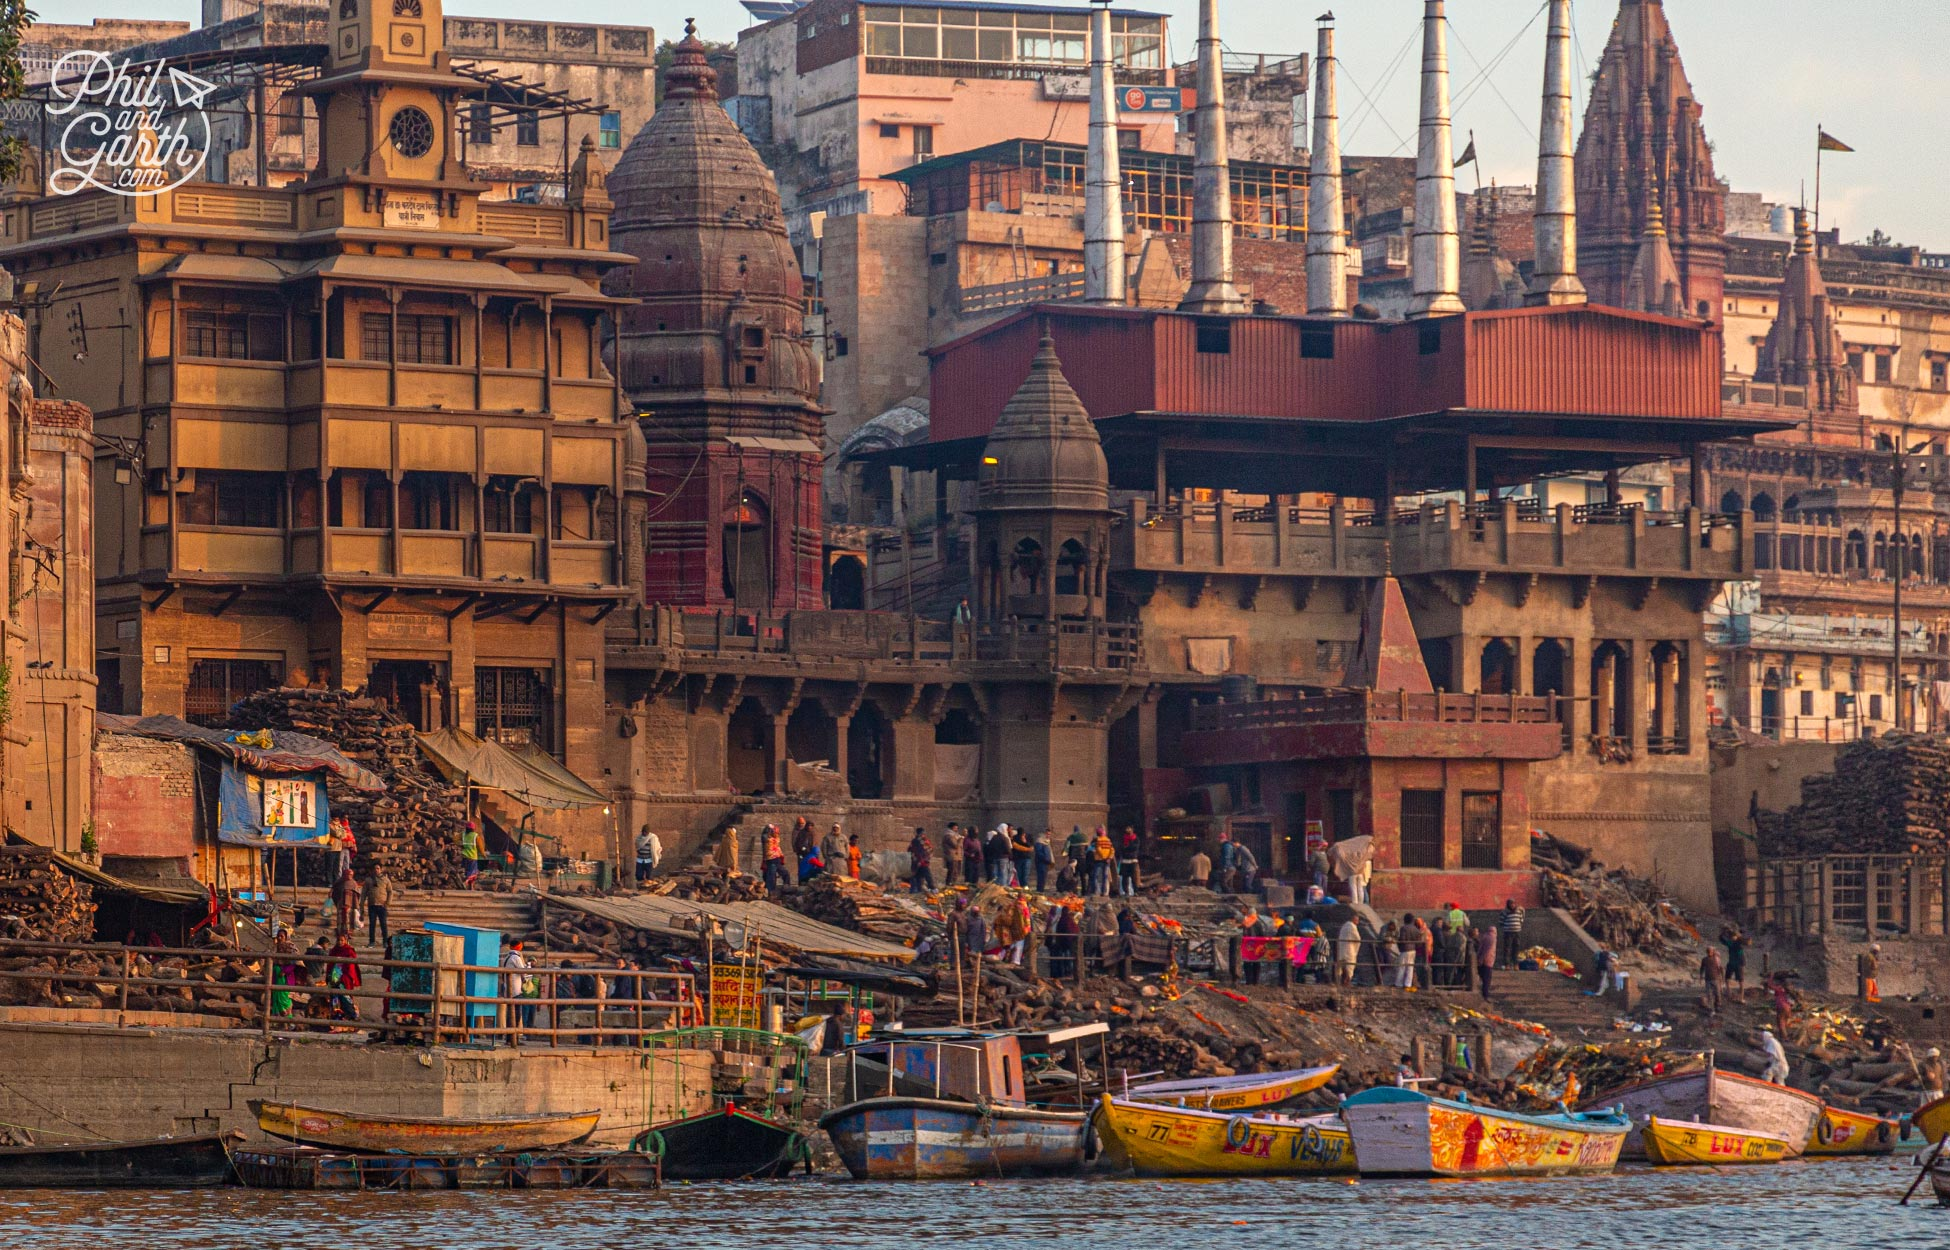 The Manikarnika Ghat where around 100 cremations take place every day